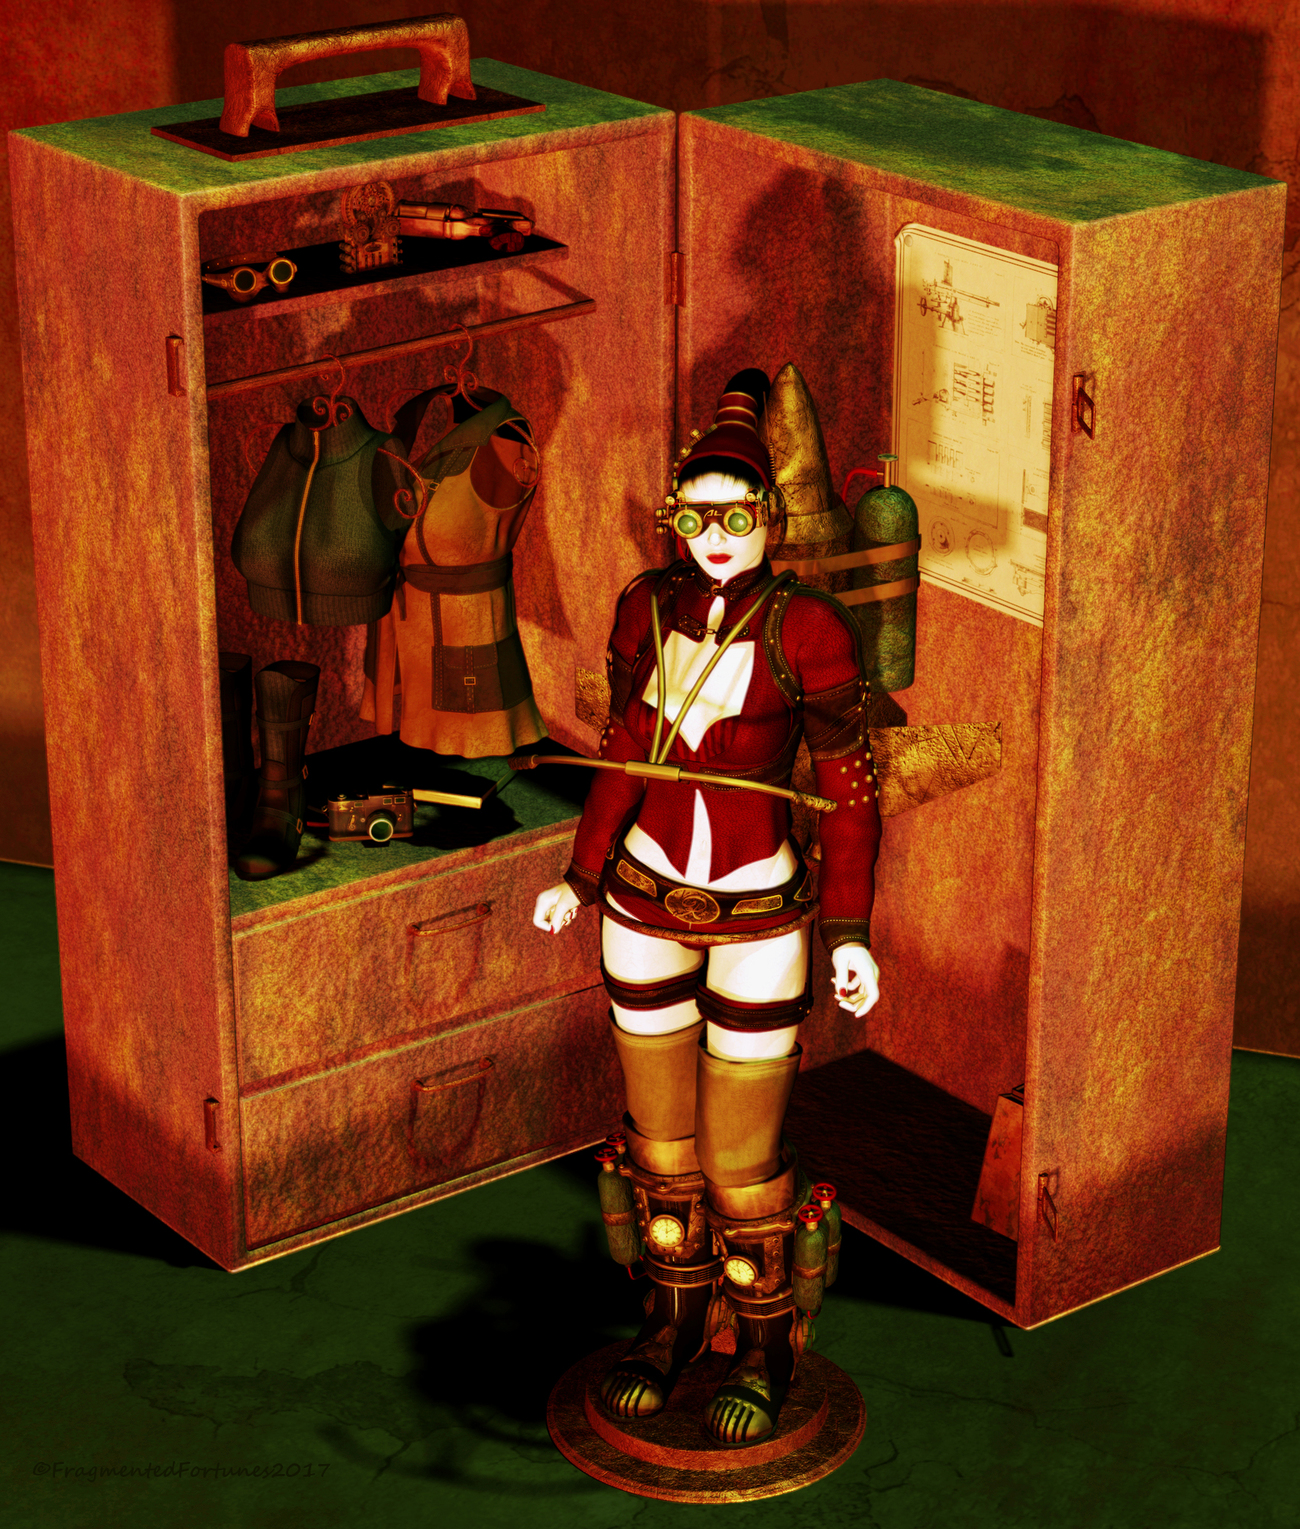 Doll Collection - Steampunk Play Set